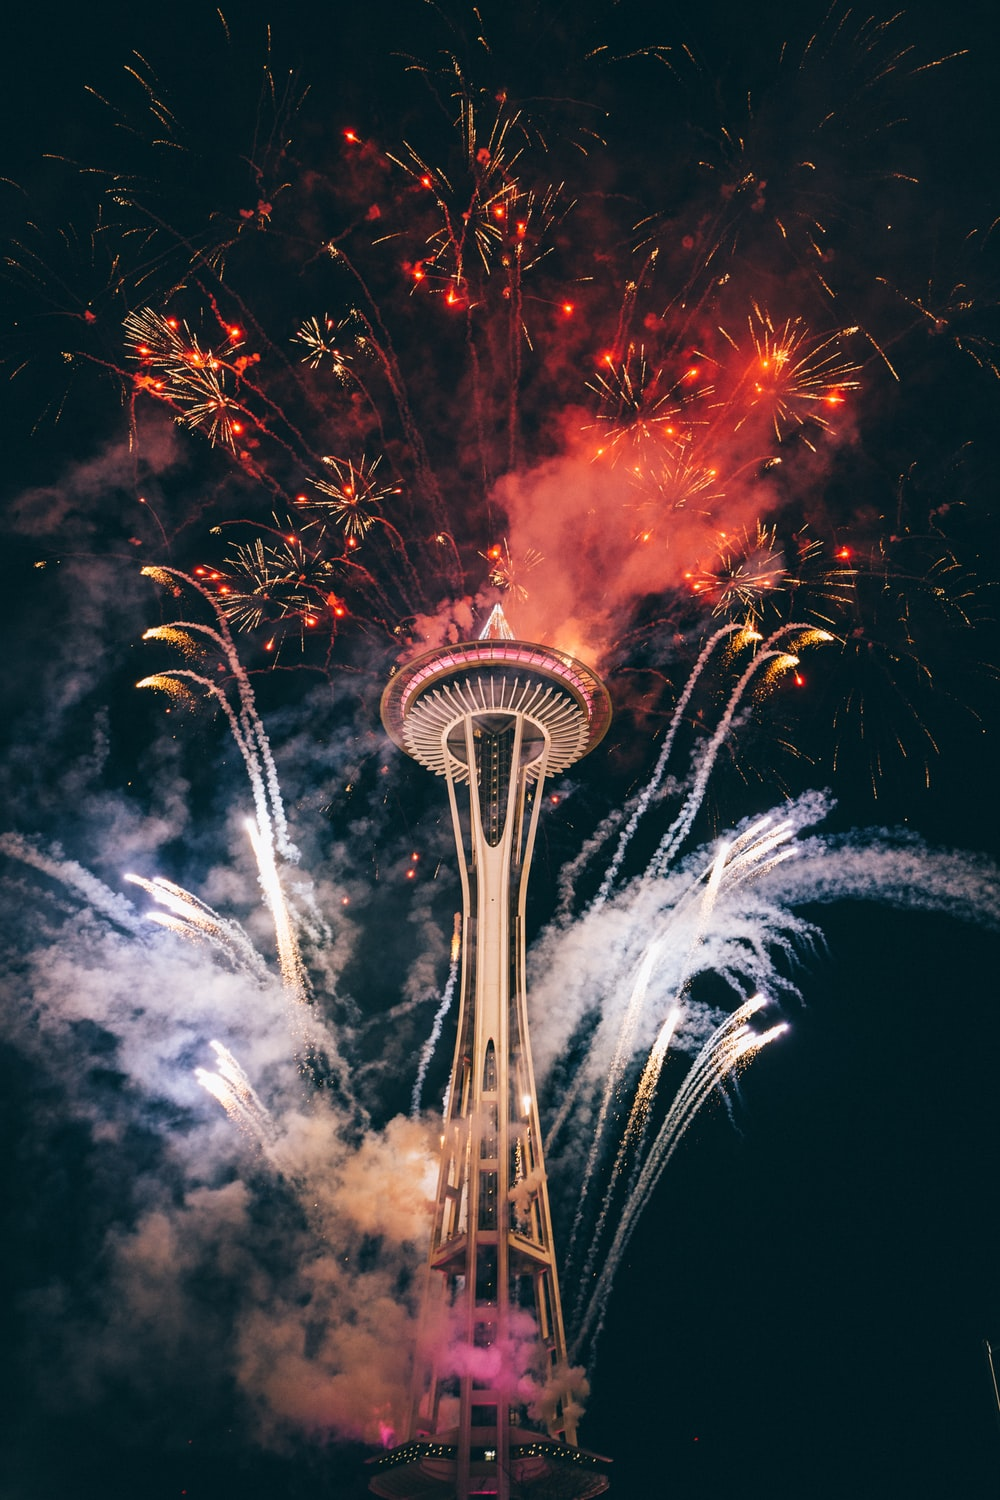 Space Needle, Seattle surrounded by fireworks